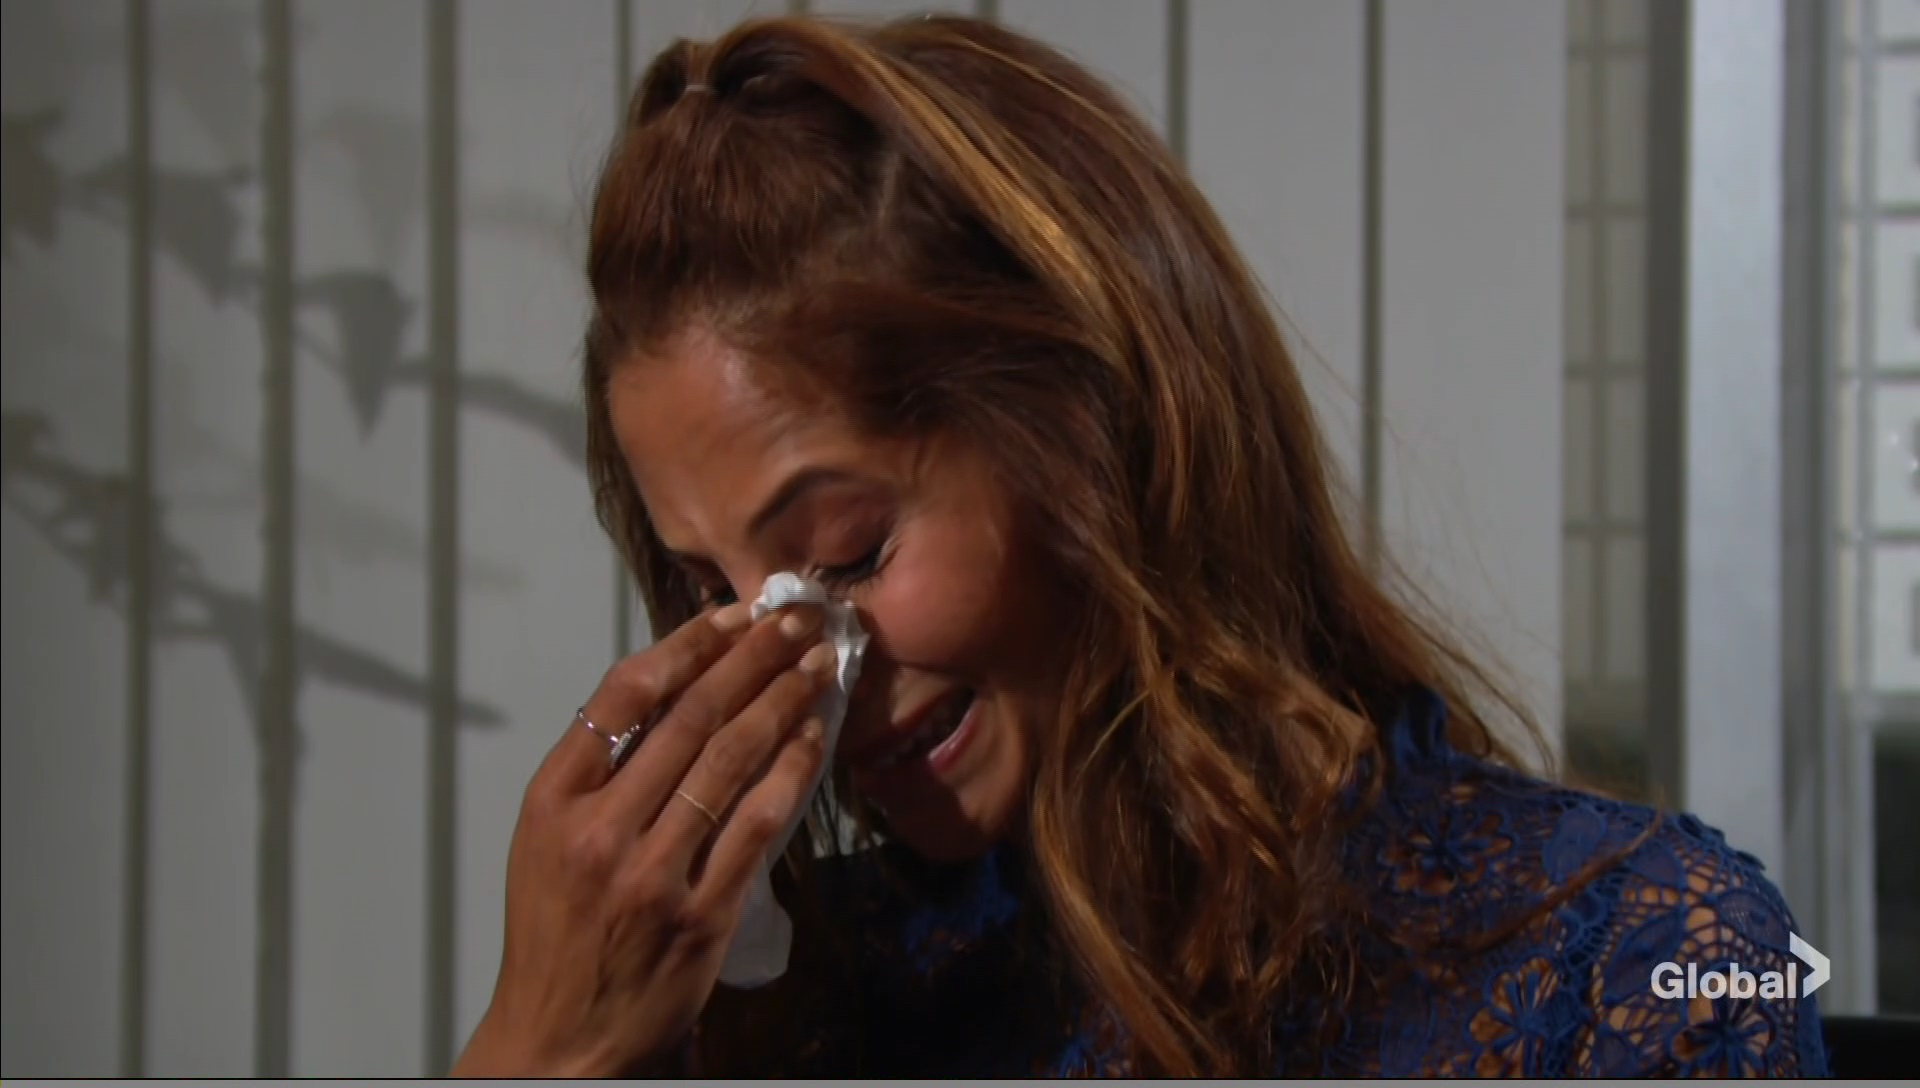 neil memorial lily cries young restless